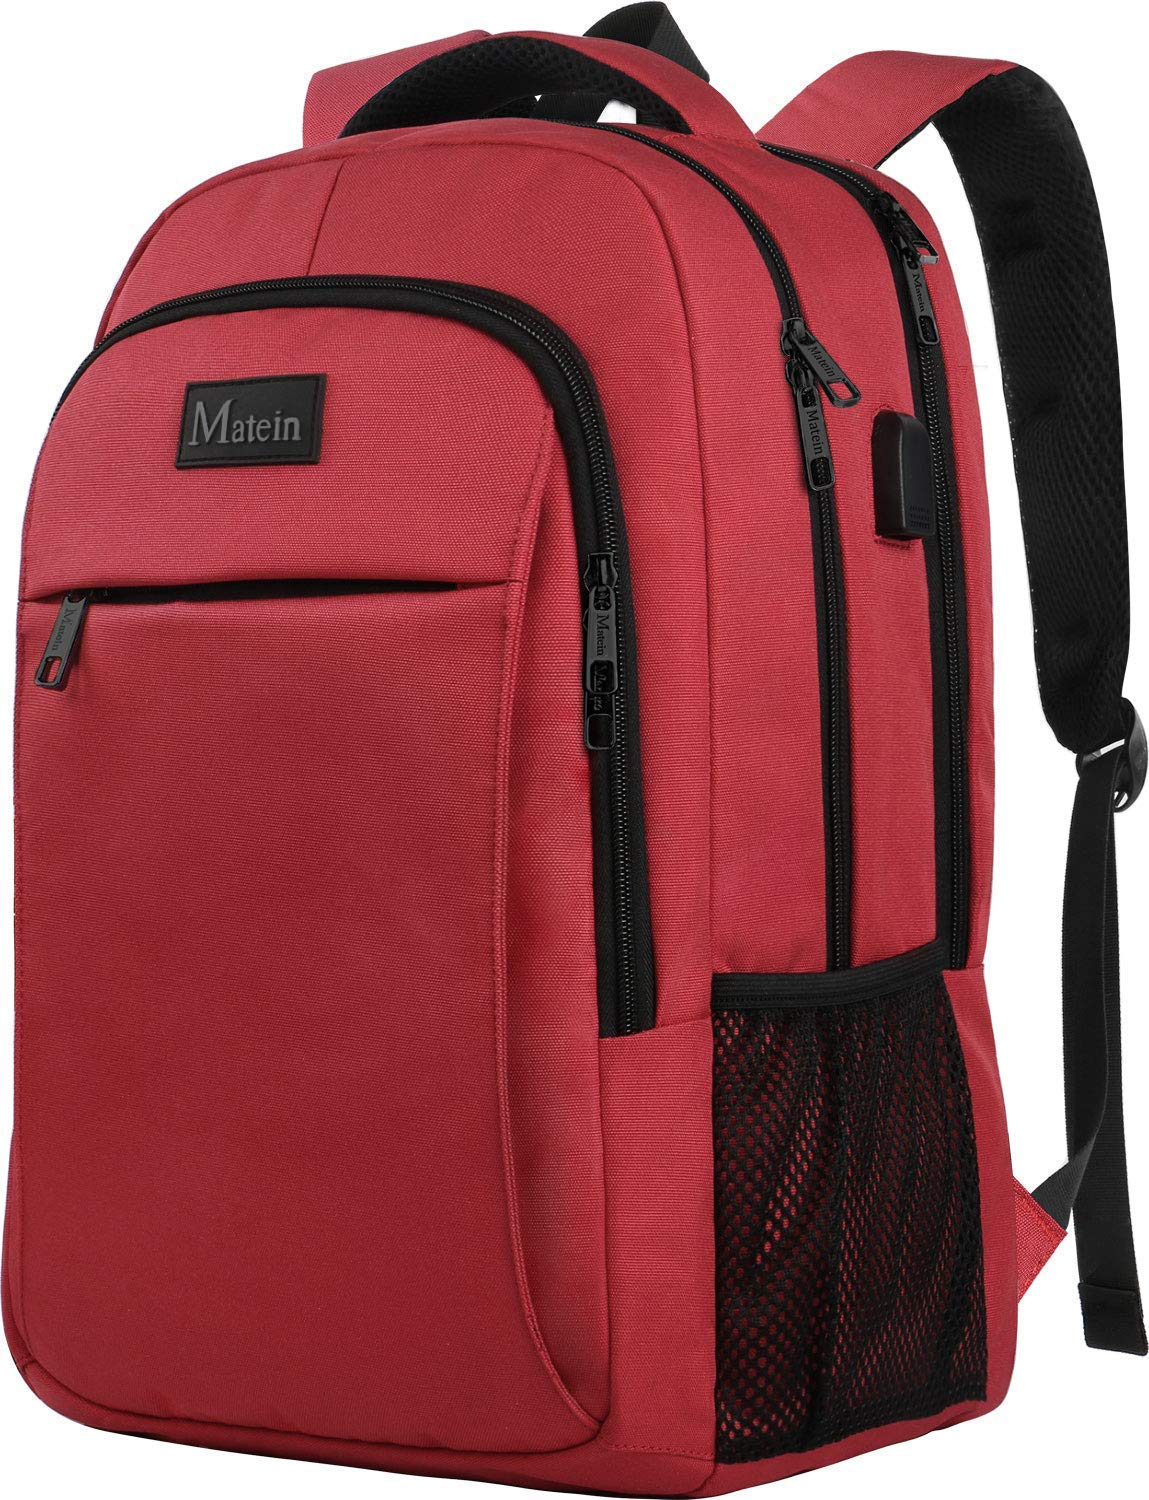 b45283037 Laptop Backpack for Girls, Womens High School Backpack with USB Port for  School Supplies and College Accessories, Water Resistant Travel Daypack  Cute Book ...